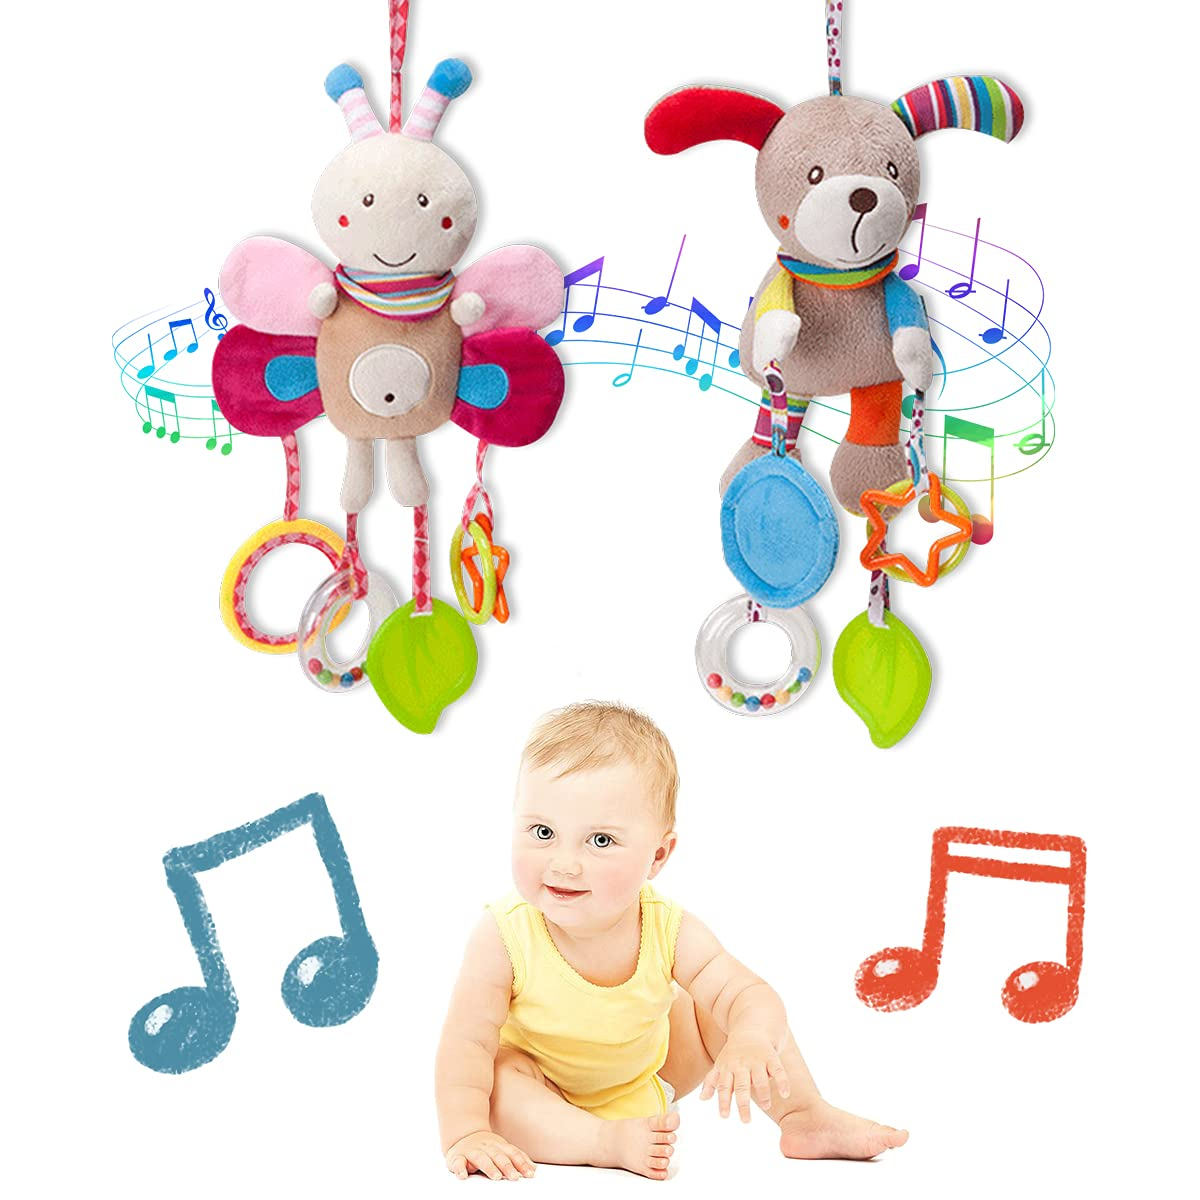 Baby Hanging Rattles Toys,Pull Down Activity Toy,Bed Crib Car Seat Travel Stroller Soft Plush Crinkle Toys for Infant, Baby Rattles Toys with Teether,3, 6, 9, 12 Months Newborn Boys Girls Gifts(2pcs)